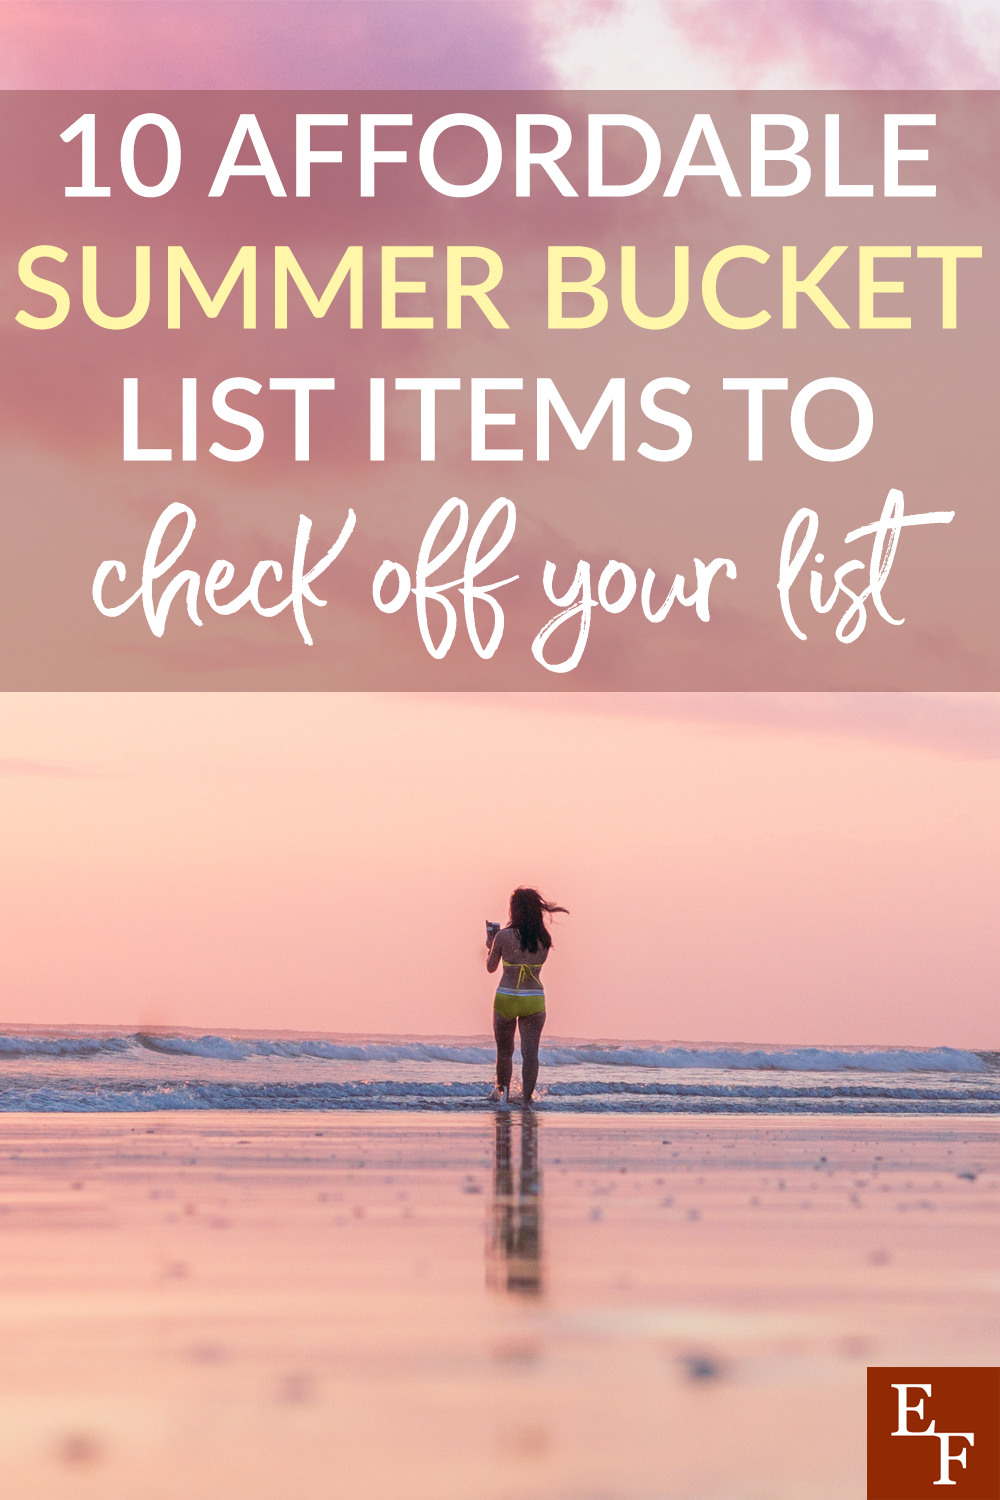 Summer is here! It's always fun to get out and enjoy the sun. If you're having issues getting a affordable summer bucket list together. We have you covered!